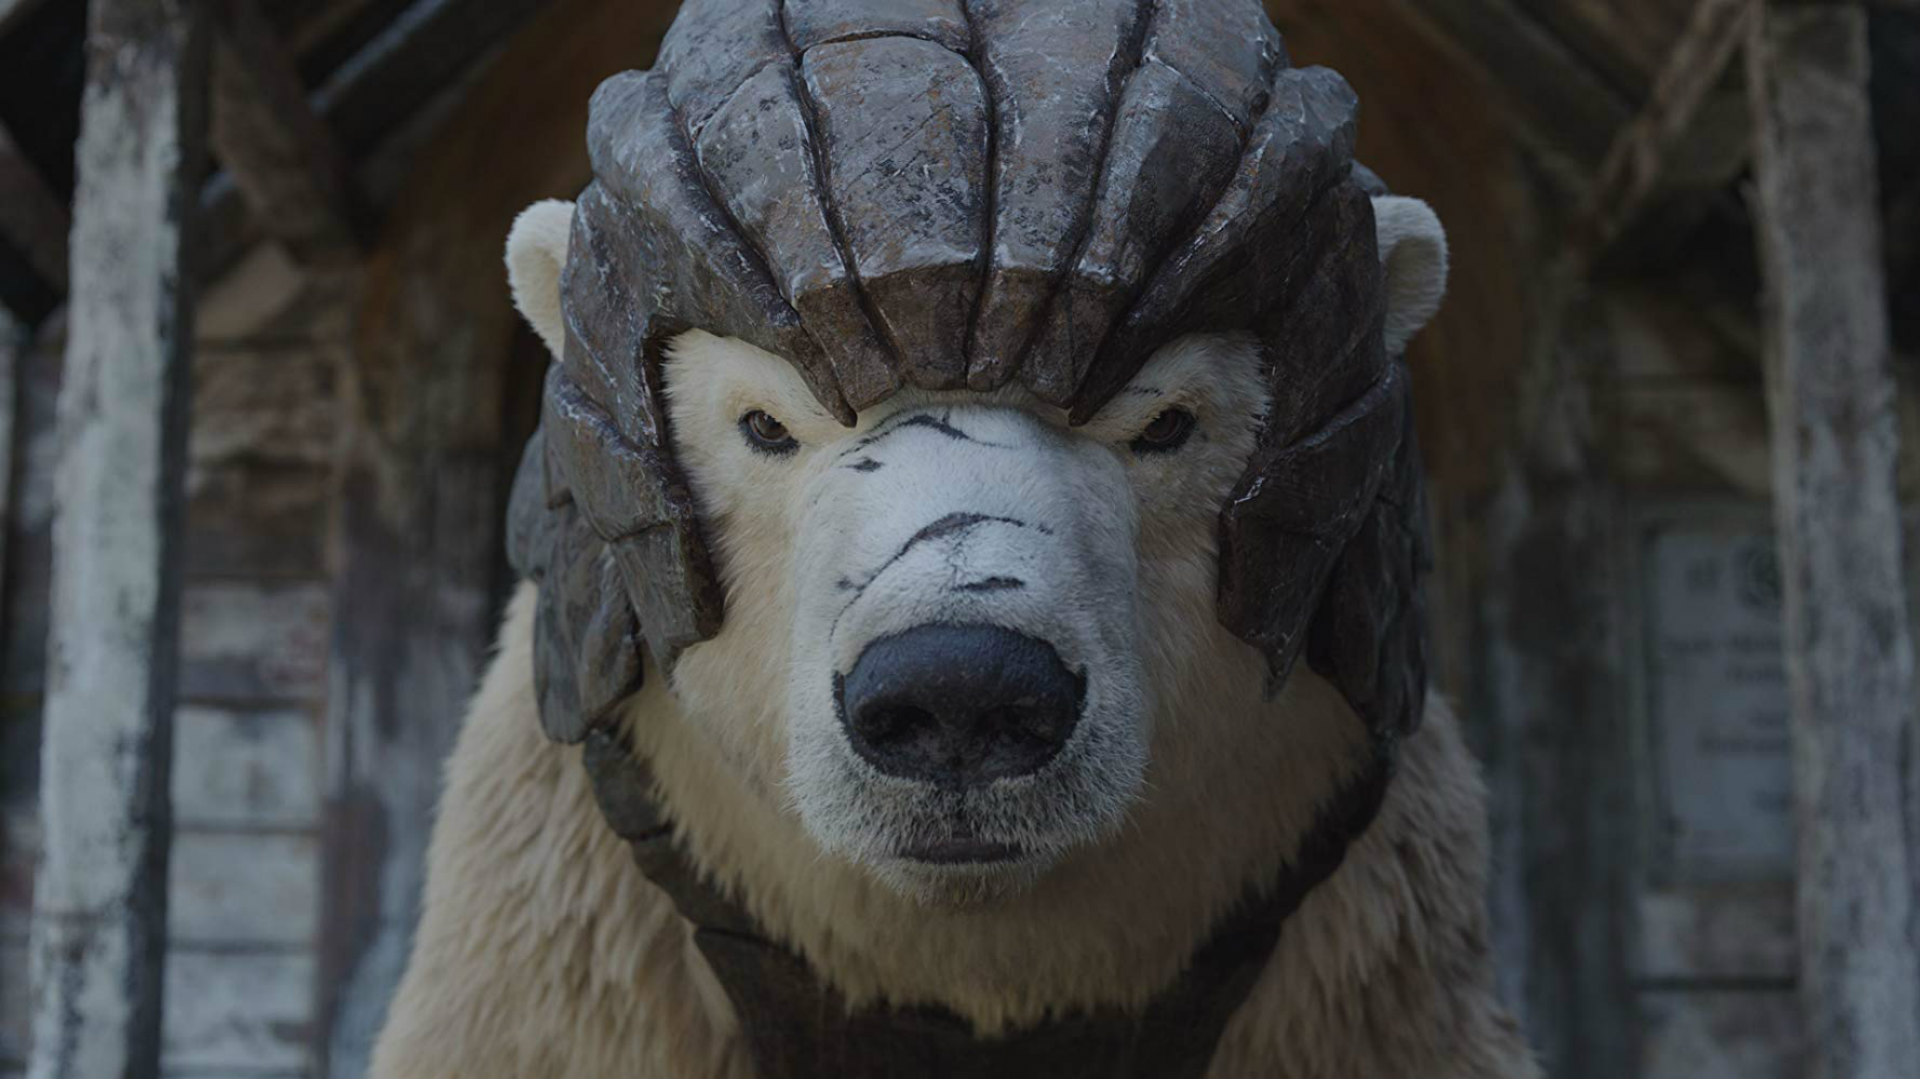 His Dark Materials Trailer Revealed at San Diego Comic-Con